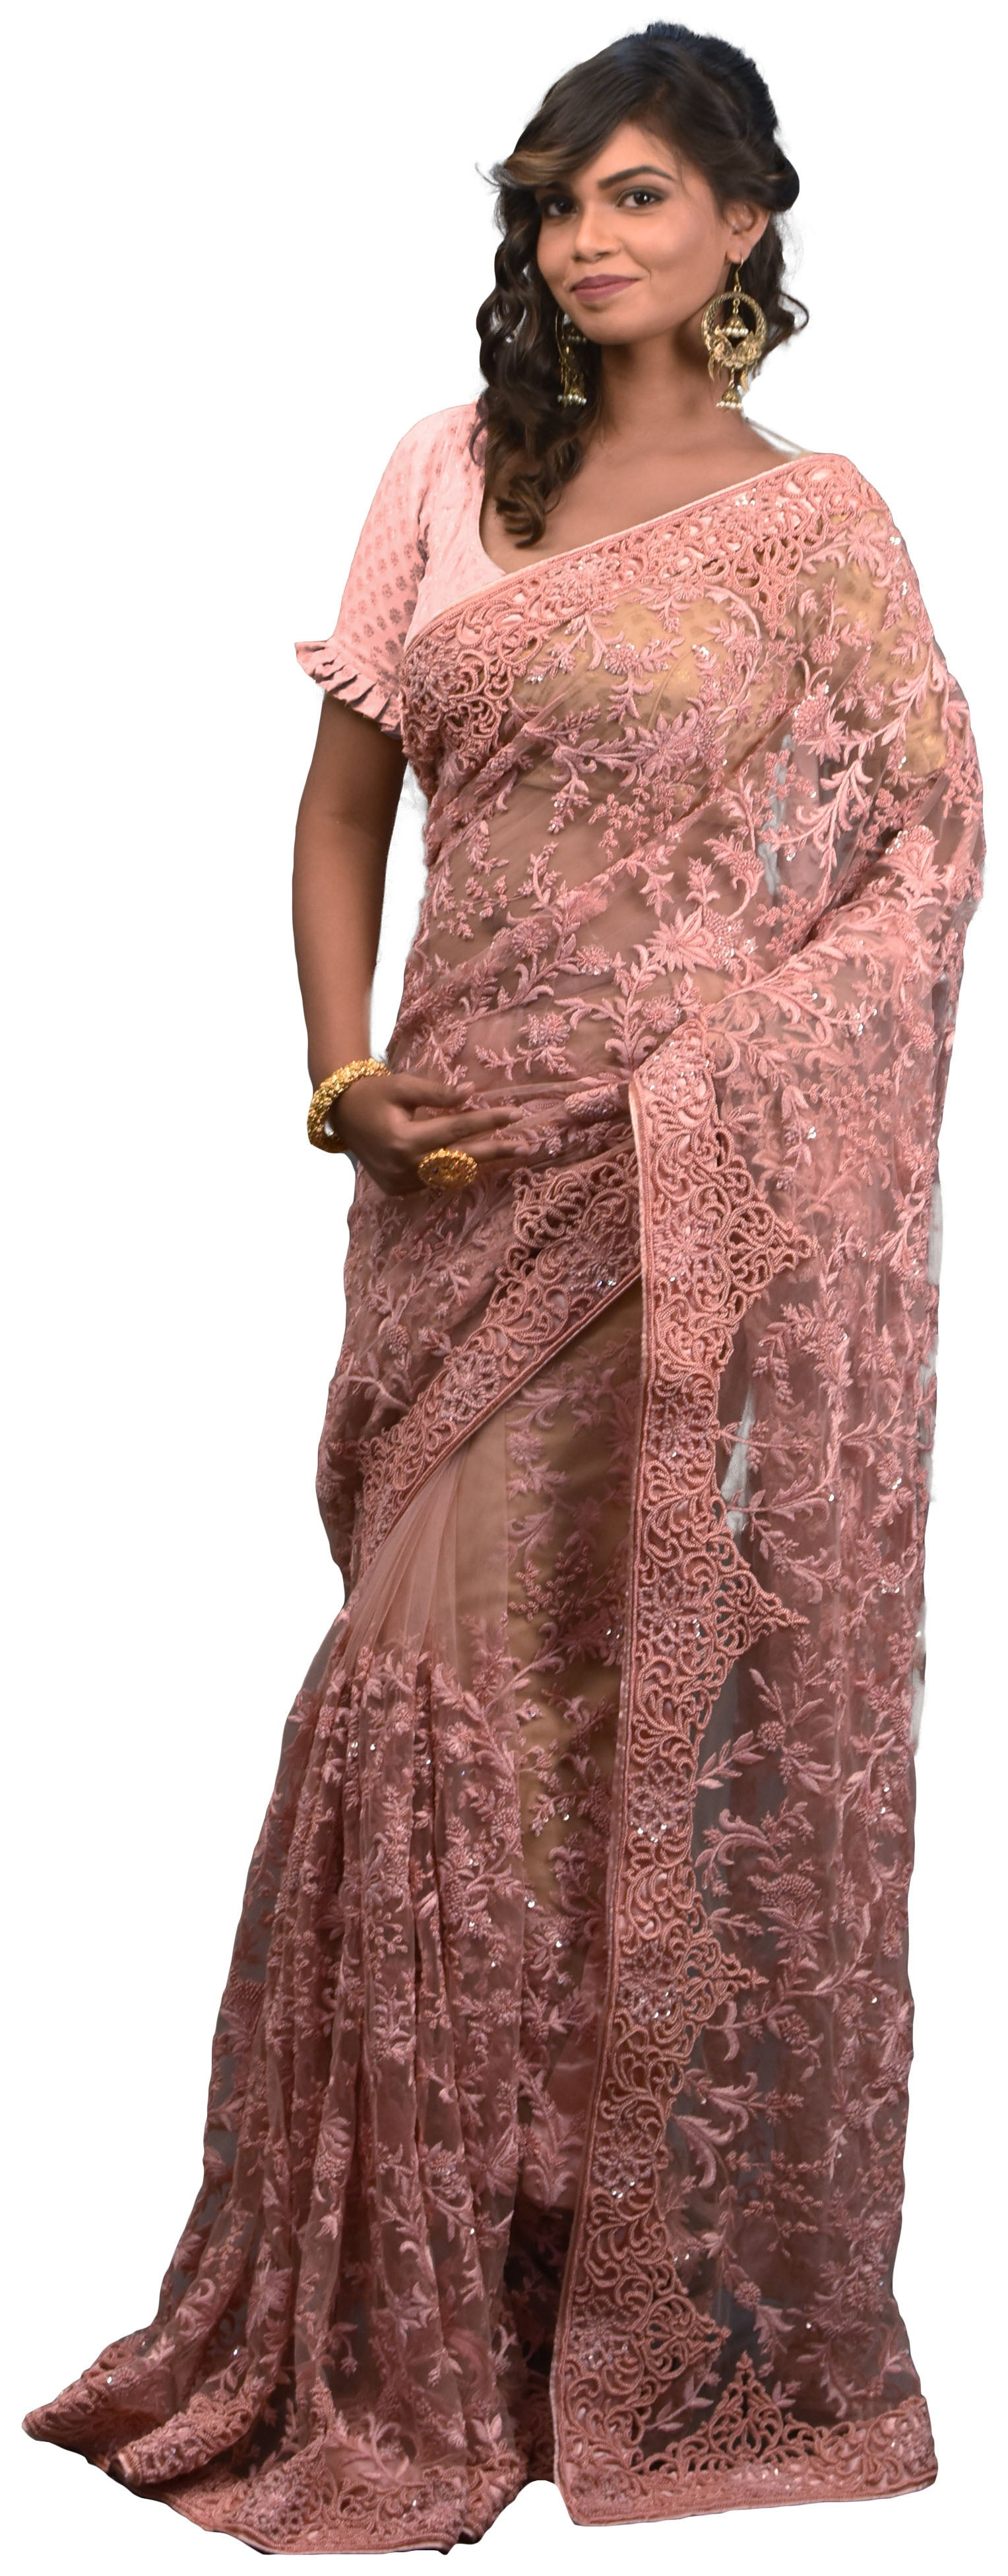 SMSAREE Peach Designer Wedding Partywear Net Thread Pearl Sequence & Beads Hand Embroidery Work Bridal Saree Sari With Blouse Piece E600